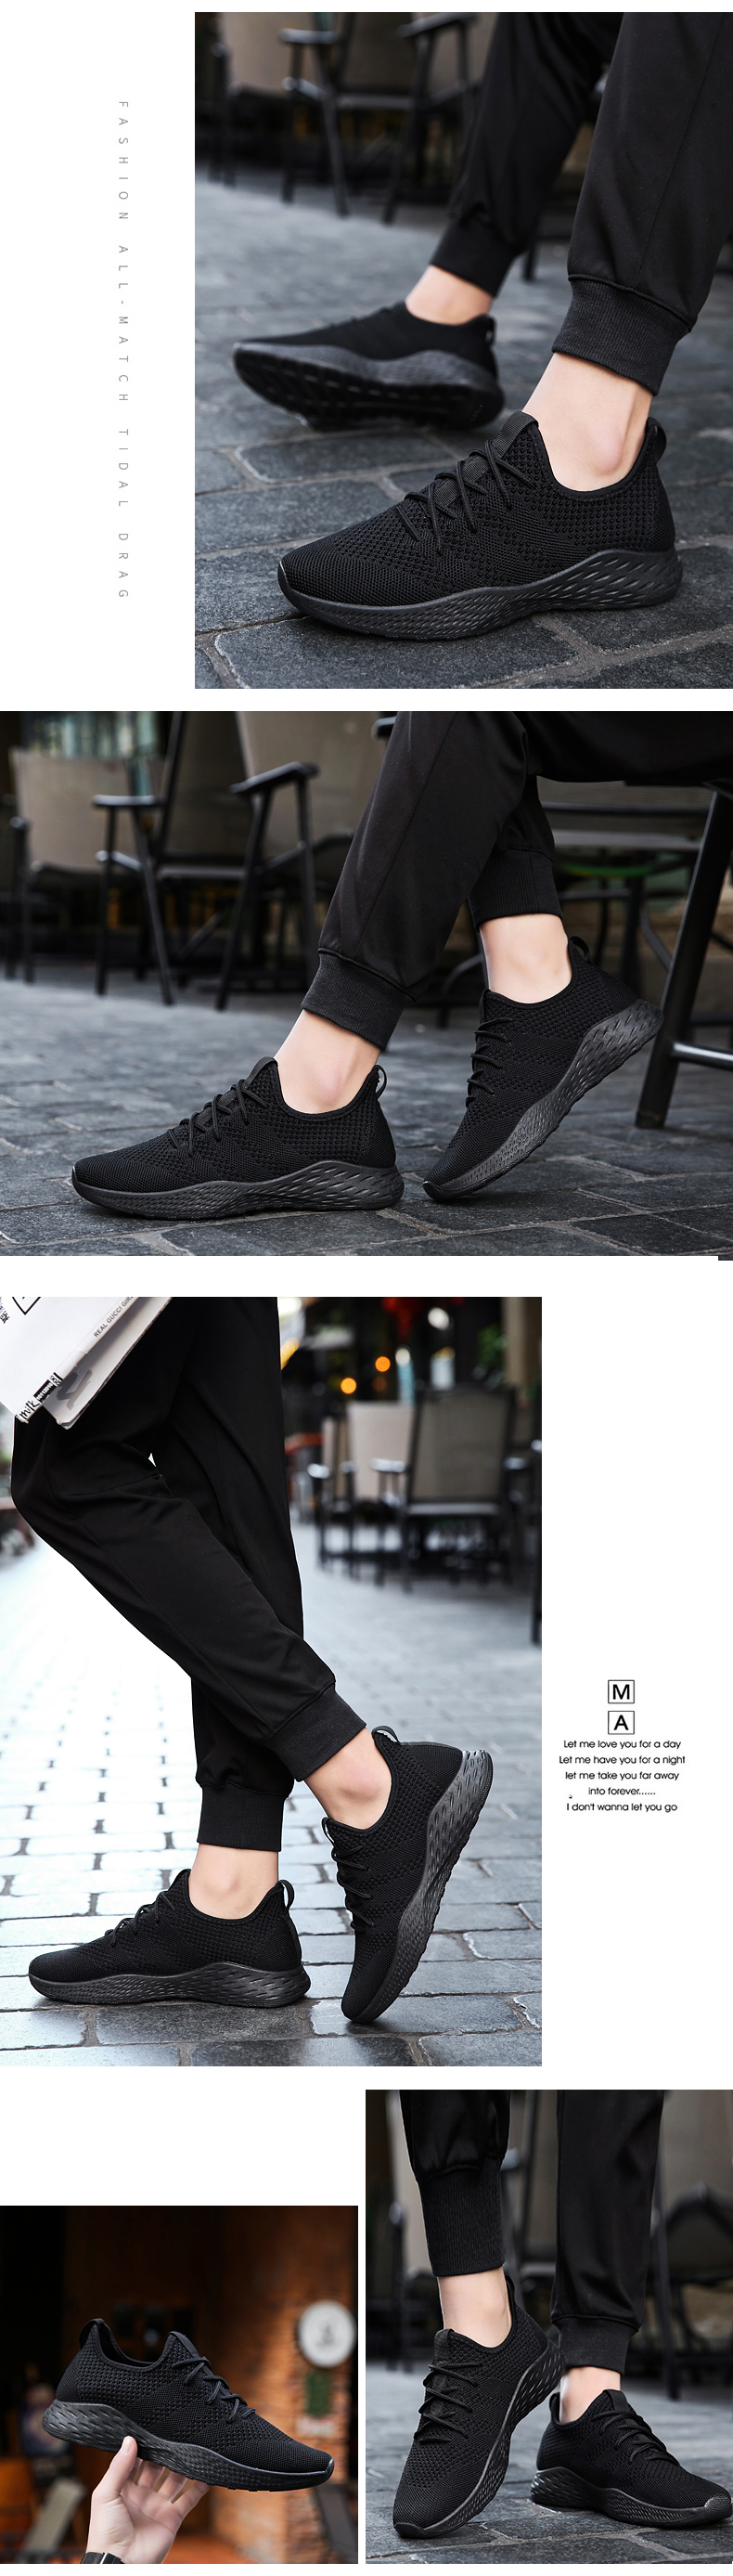 HTB1AHmAajLuK1Rjy0Fhq6xpdFXa8 - Men Casual Shoes Men Sneakers Brand Men Shoes Male Mesh Flats Loafers Slip On Big Size Breathable Spring Autumn Winter Xammep